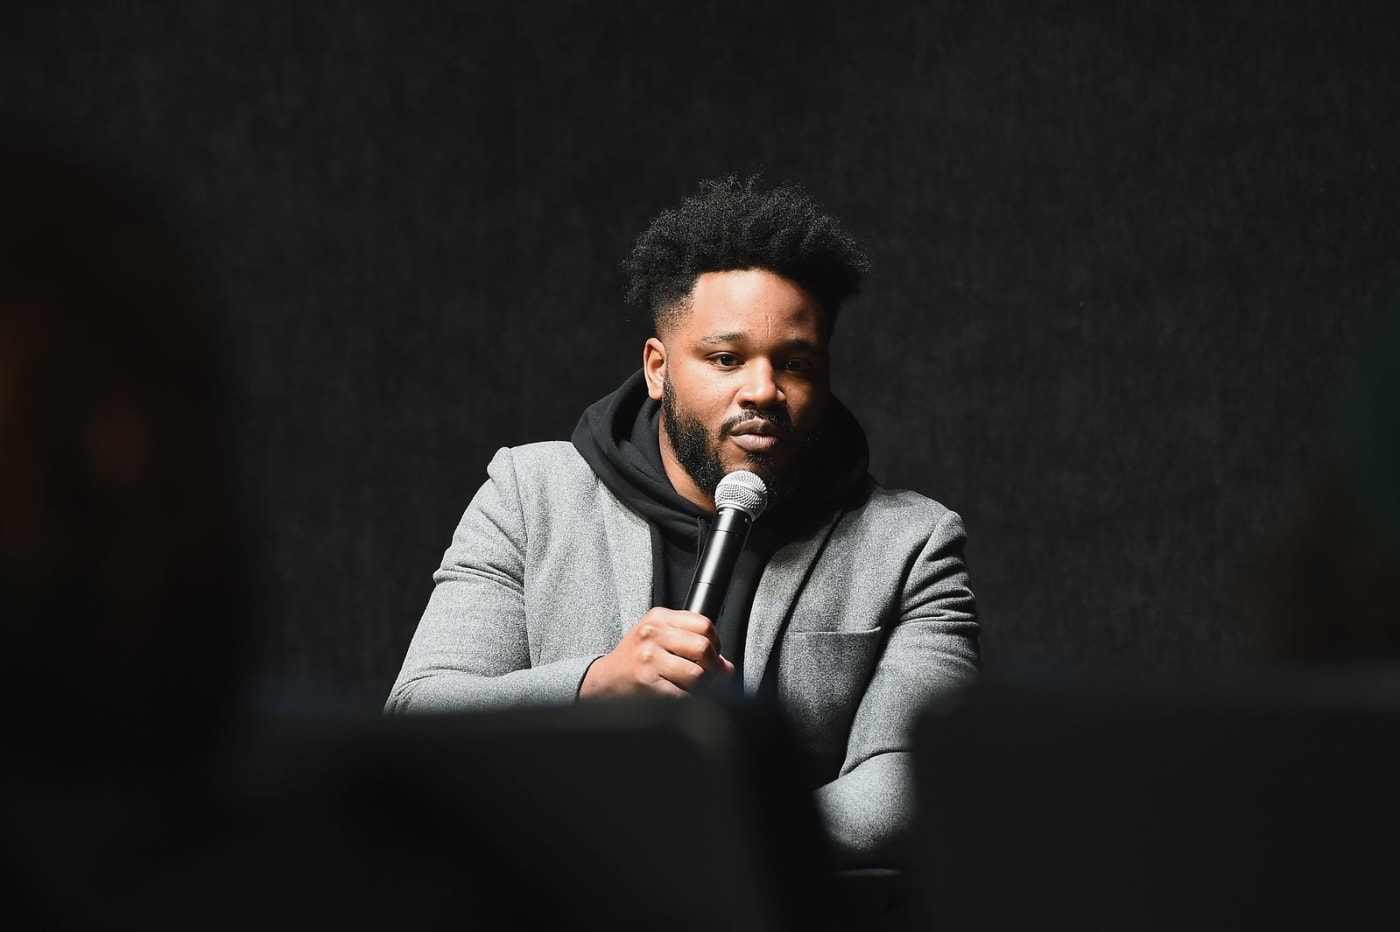 Ryan Coogler at Sundance 2019